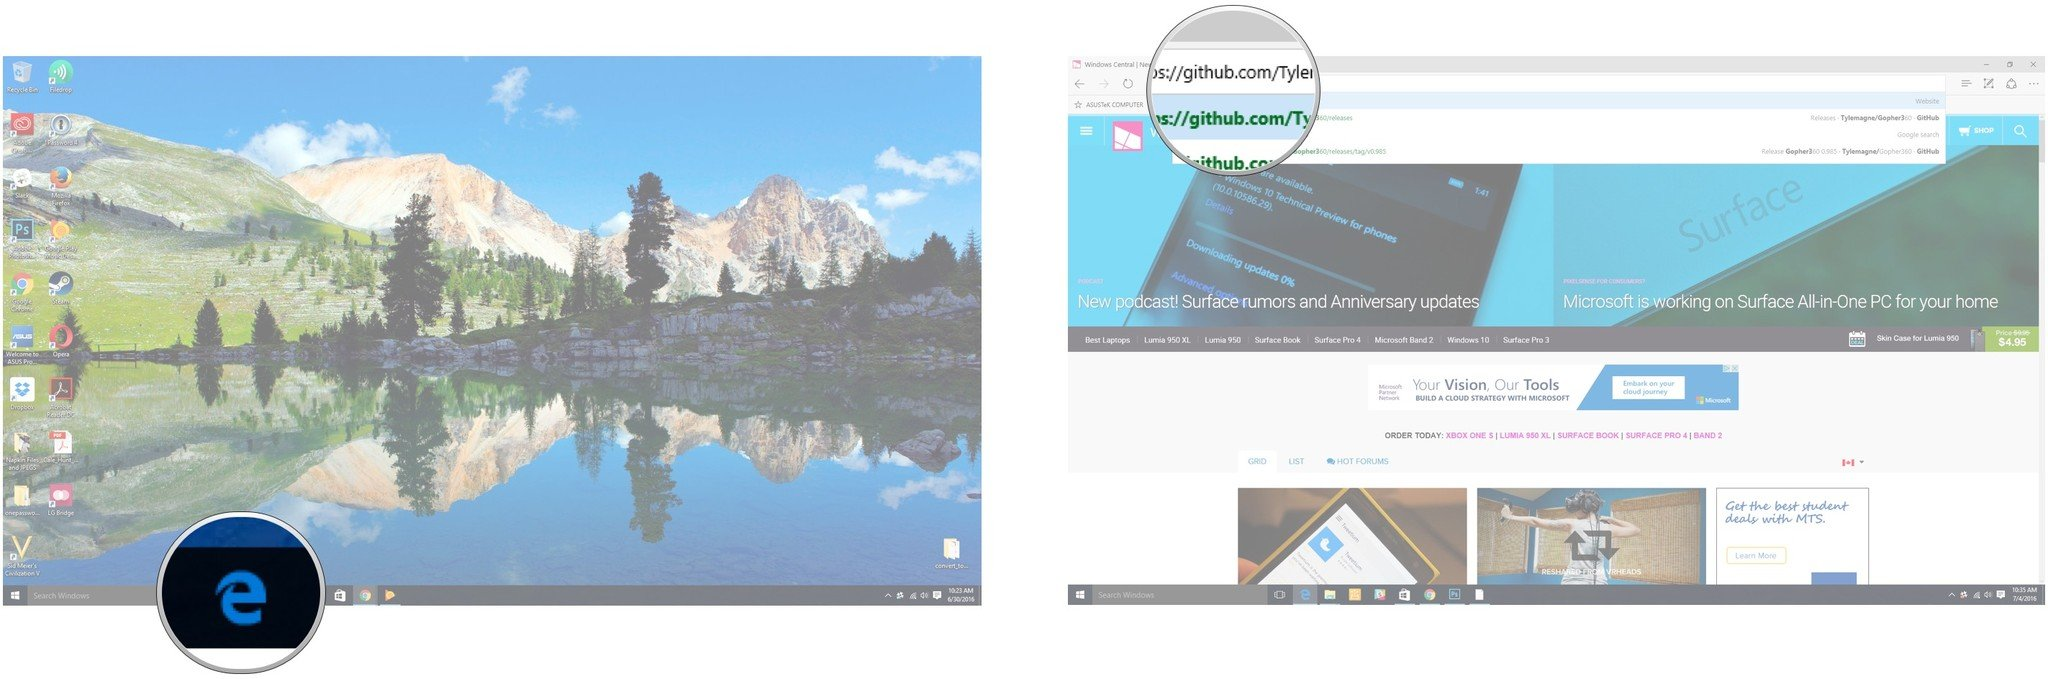 hight resolution of launch your web browser navigate to the gopher360 webpage